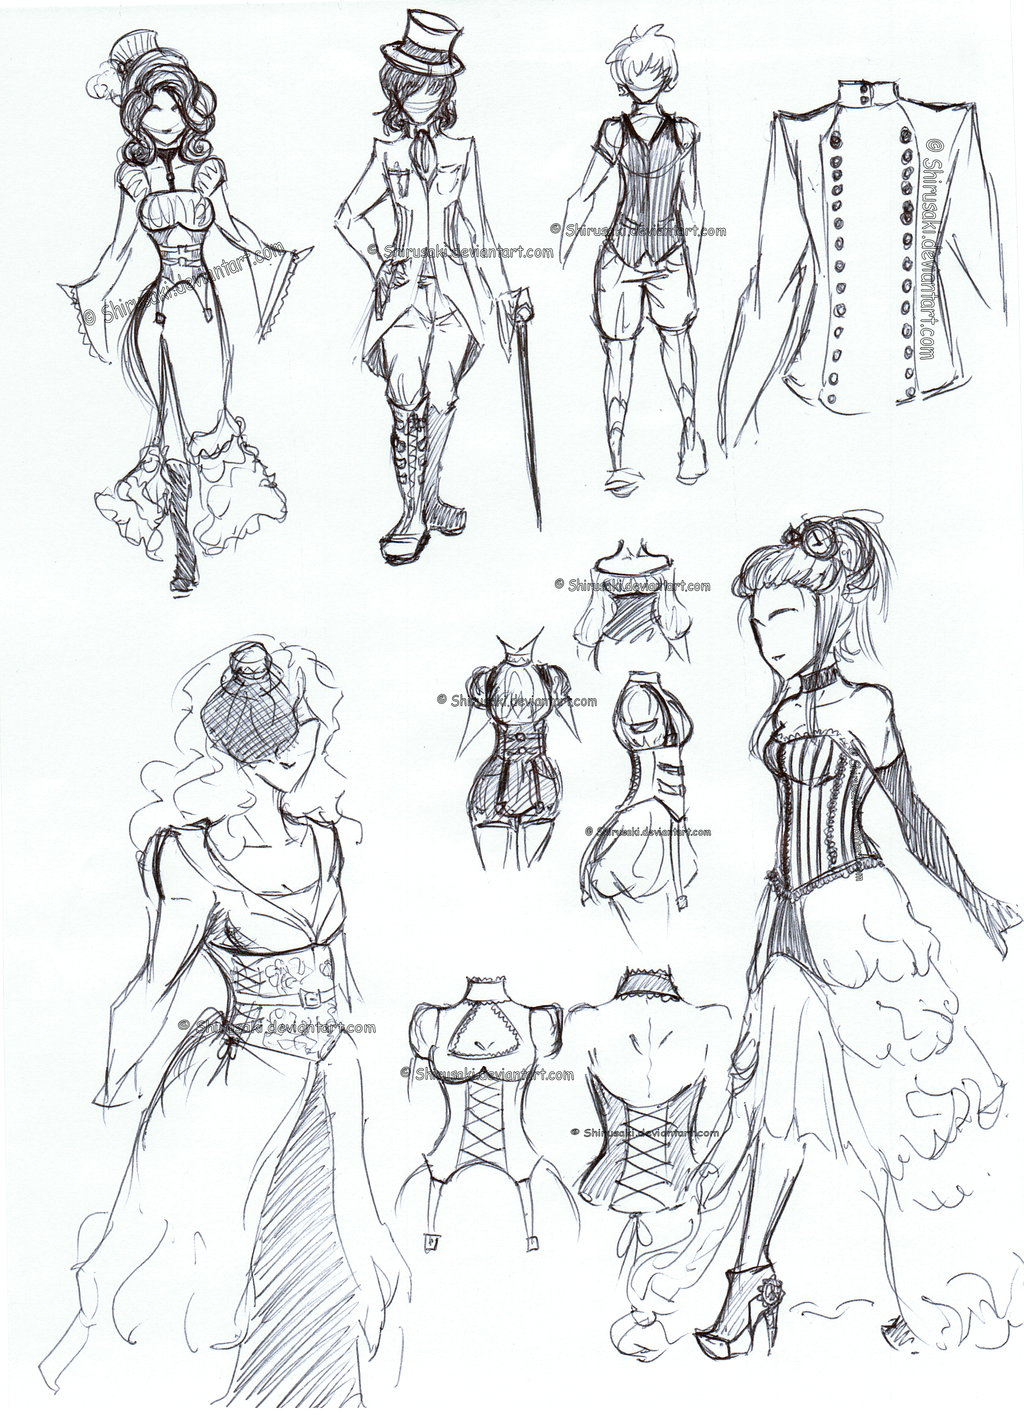 Manga Flowing Dress By Amongangels How To Draw Steampunk Clothes By  Shirusaki Steampunk Clothes By Shirusaki